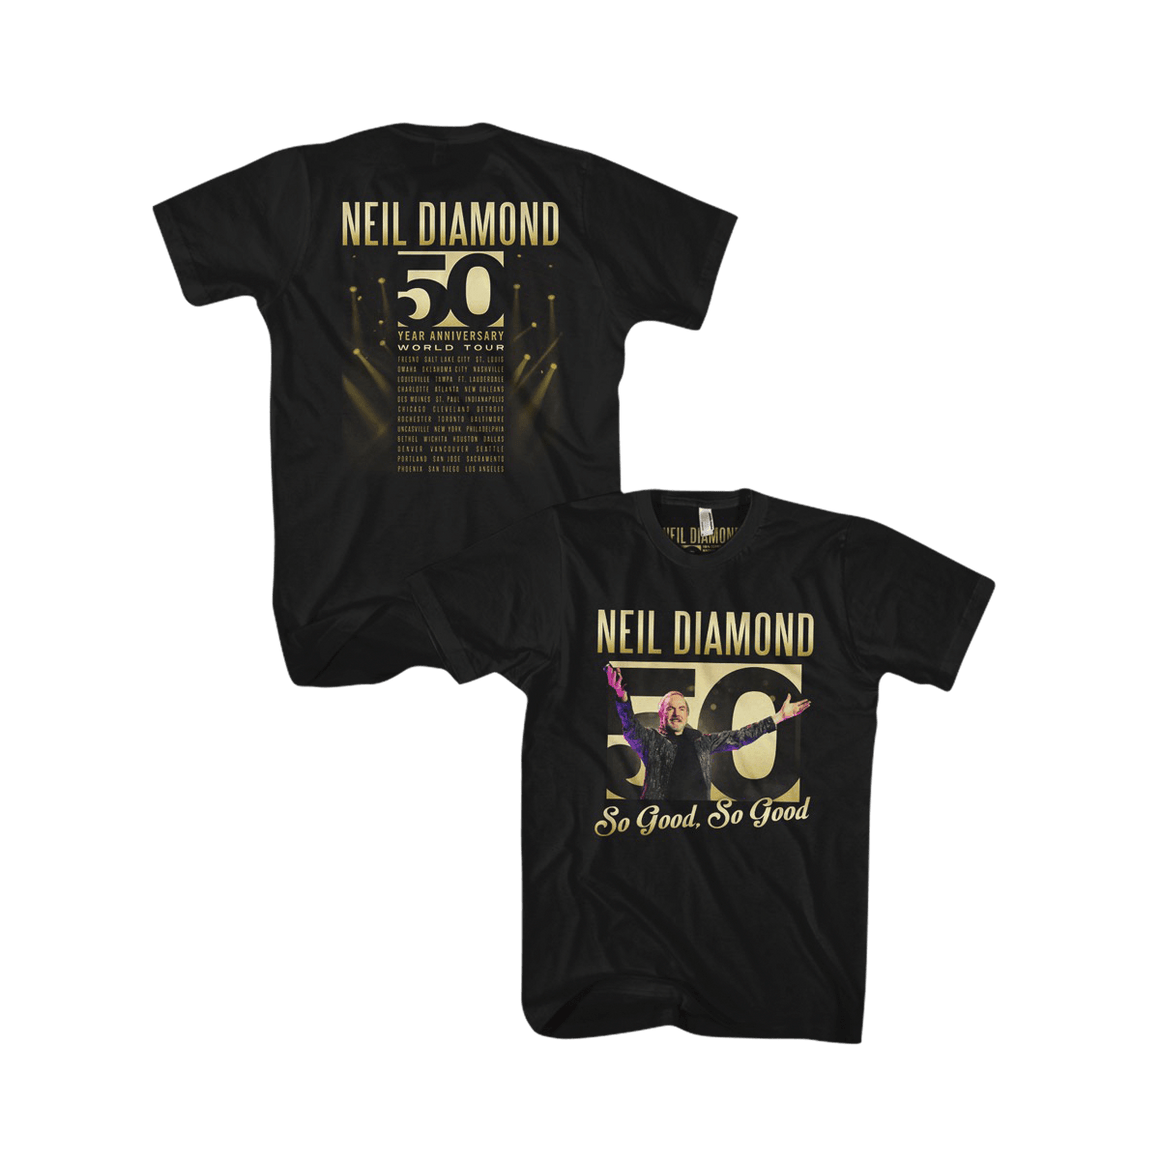 50th Anniversary Tour Tee-Neil Diamond